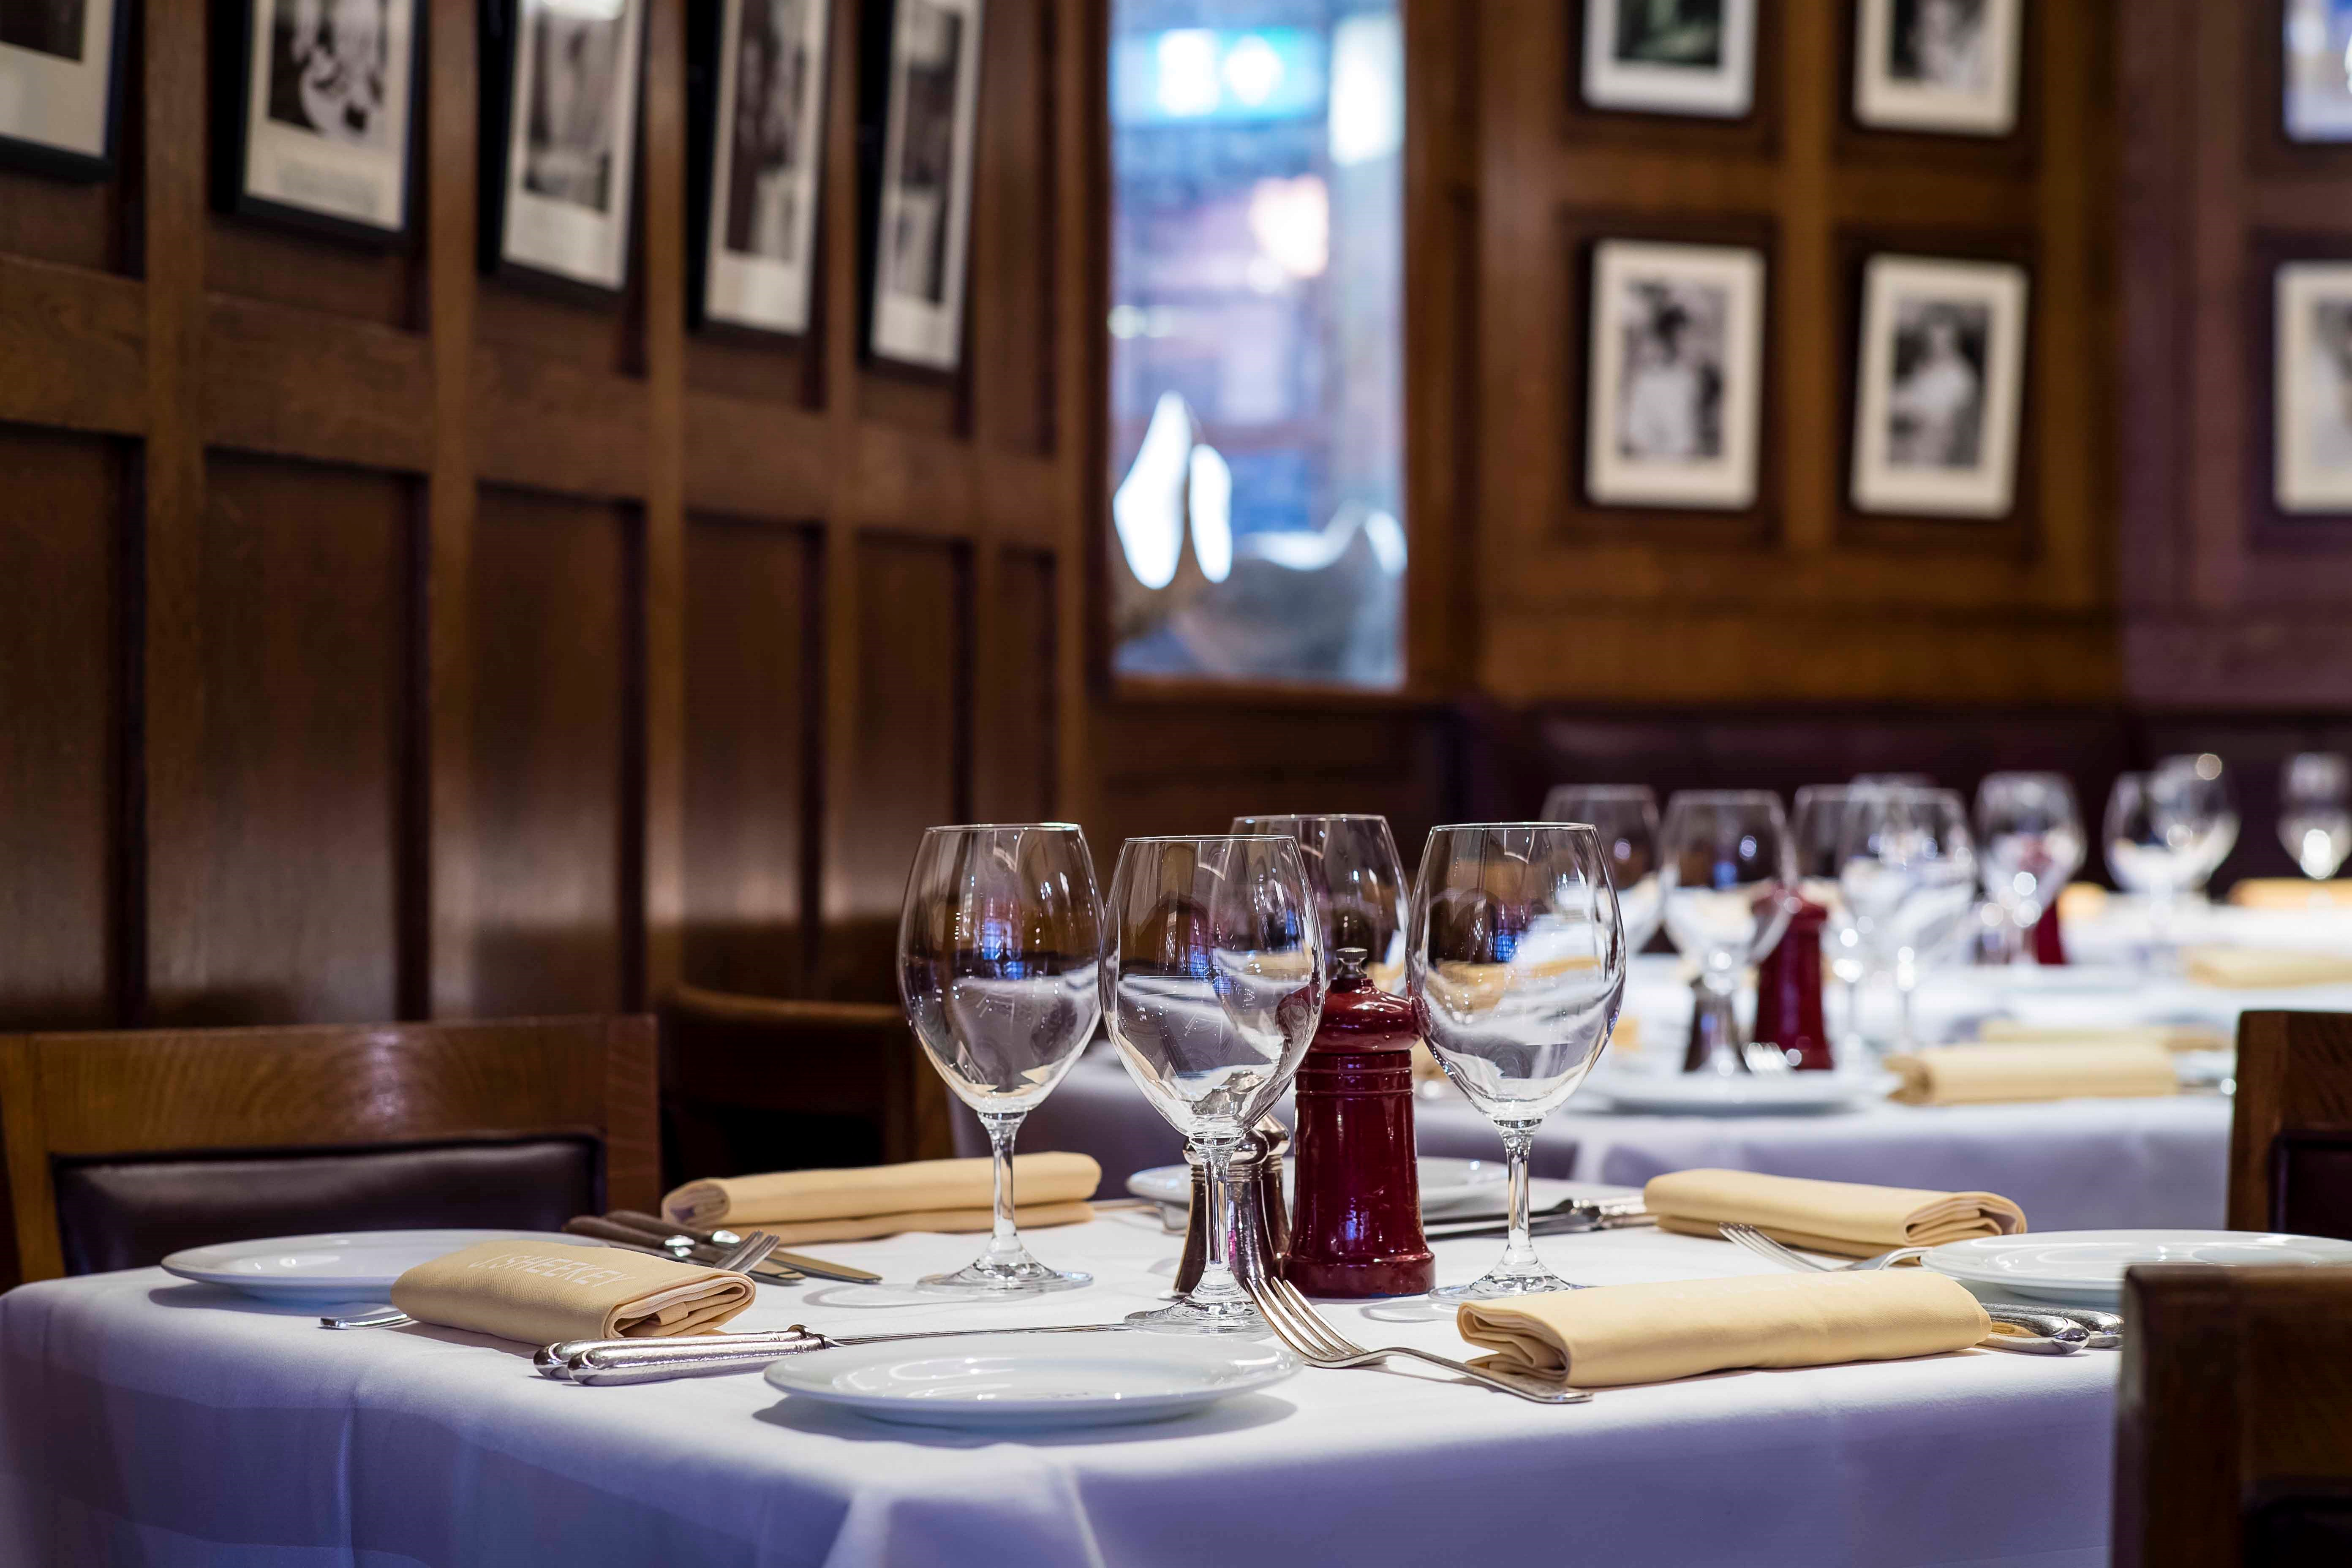 Romantic Restaurant in Leicester Square, J Sheekey, Iconic London Restaurant